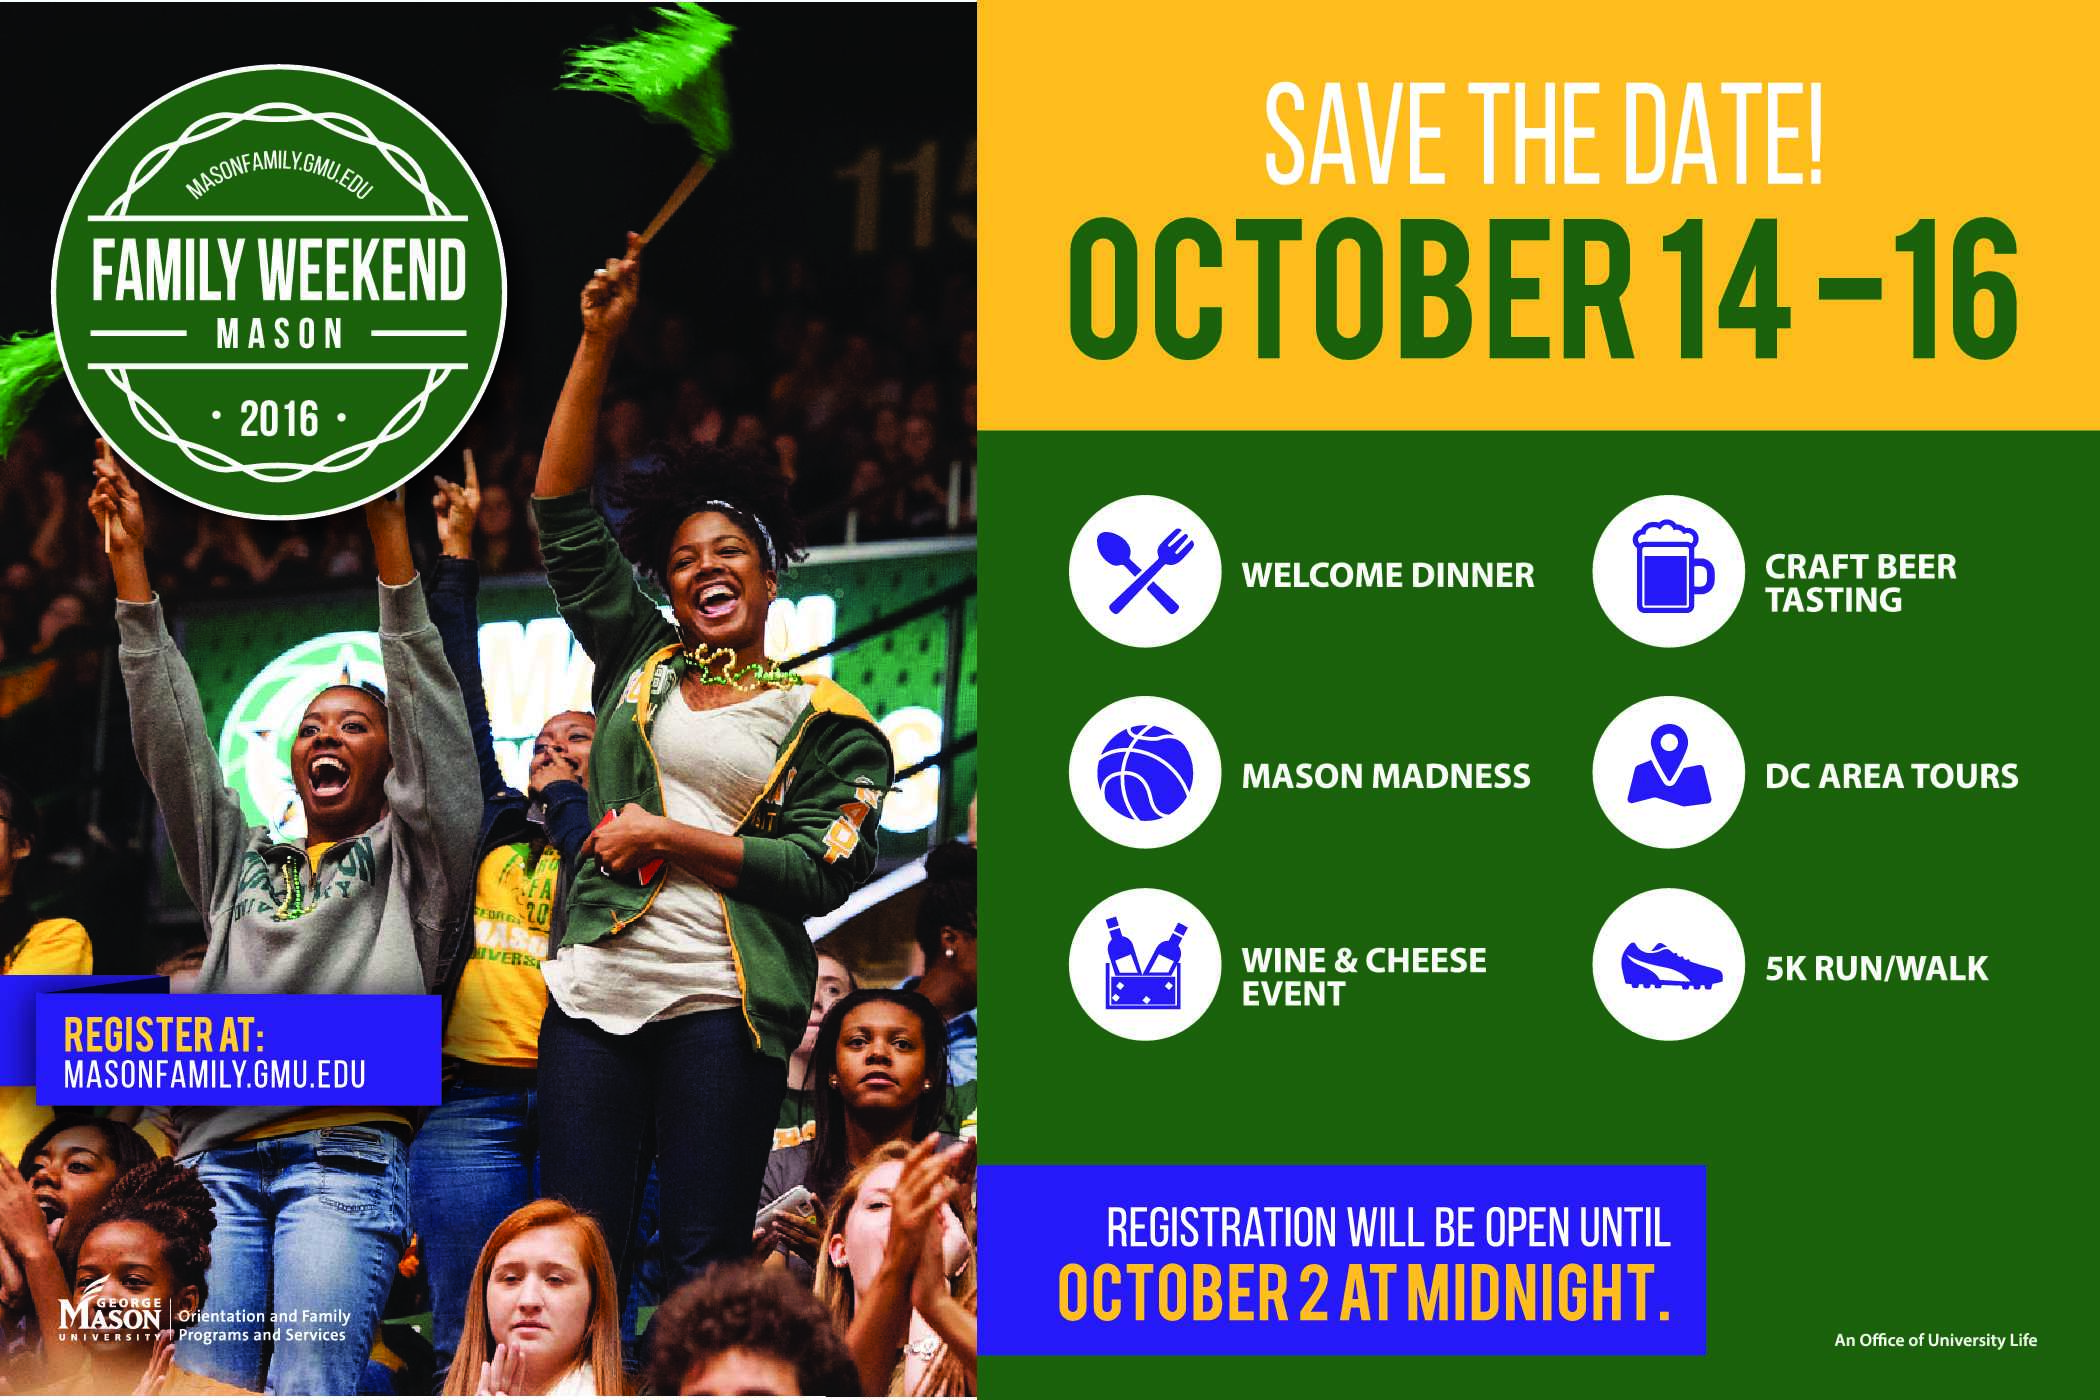 Information regarding Family Weekend 2016 is as follows Create Your Own Tags: is #FW2016 #MasonFamily and Start date (when you would like your content to be posted) is July 25 2016 and End Date  (when you would like your content to be removed from the screens) is October 16 2016 and File is Browse and Name of Ad/Event is Family Weekend 2016 and File Name is FWplasmascreen-2016_comp.jpg and Email is lconner@gmu.edu and Name is Lindsey Conner and Panel for your ad to be displayed is Main and Affiliation is Mason Department and Group Name is Mason Family Programs and Services and